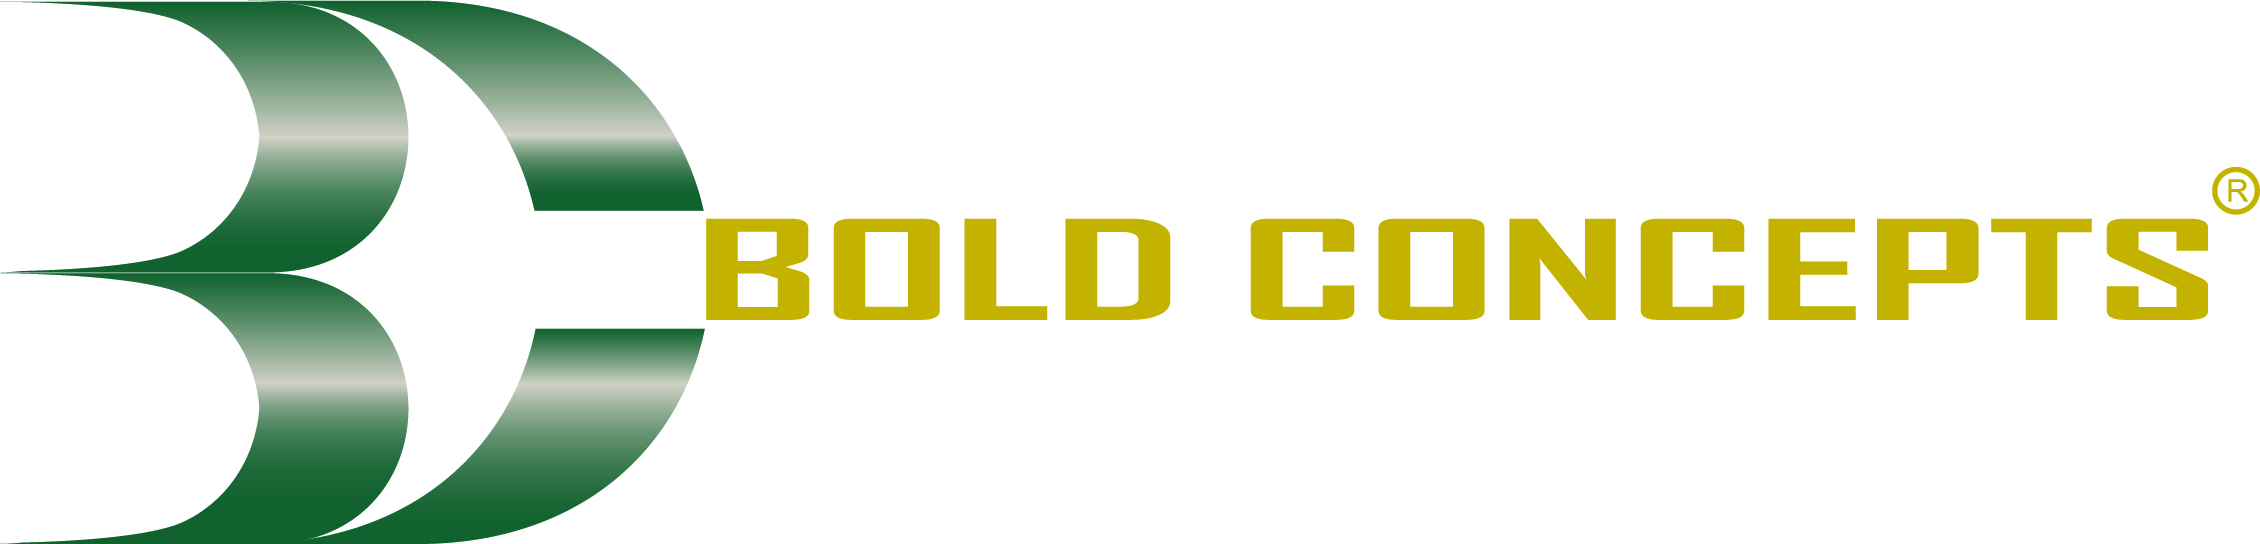 Registered Trademark boldconcepts_logo.jpg